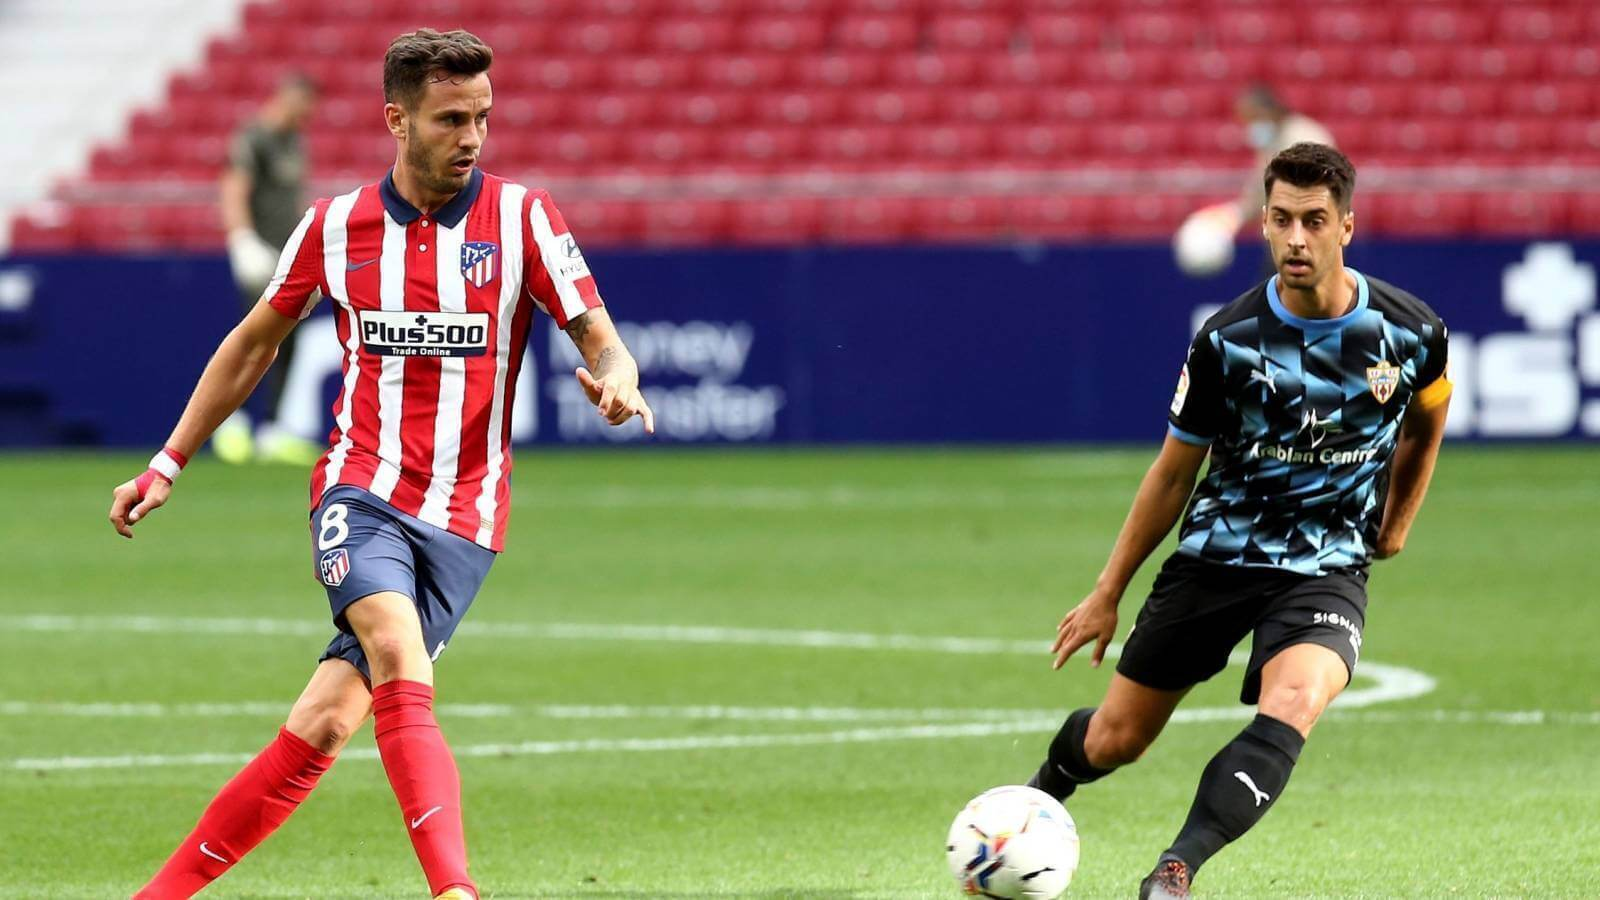 Saul Niguez moved to Chelsea on loan deal